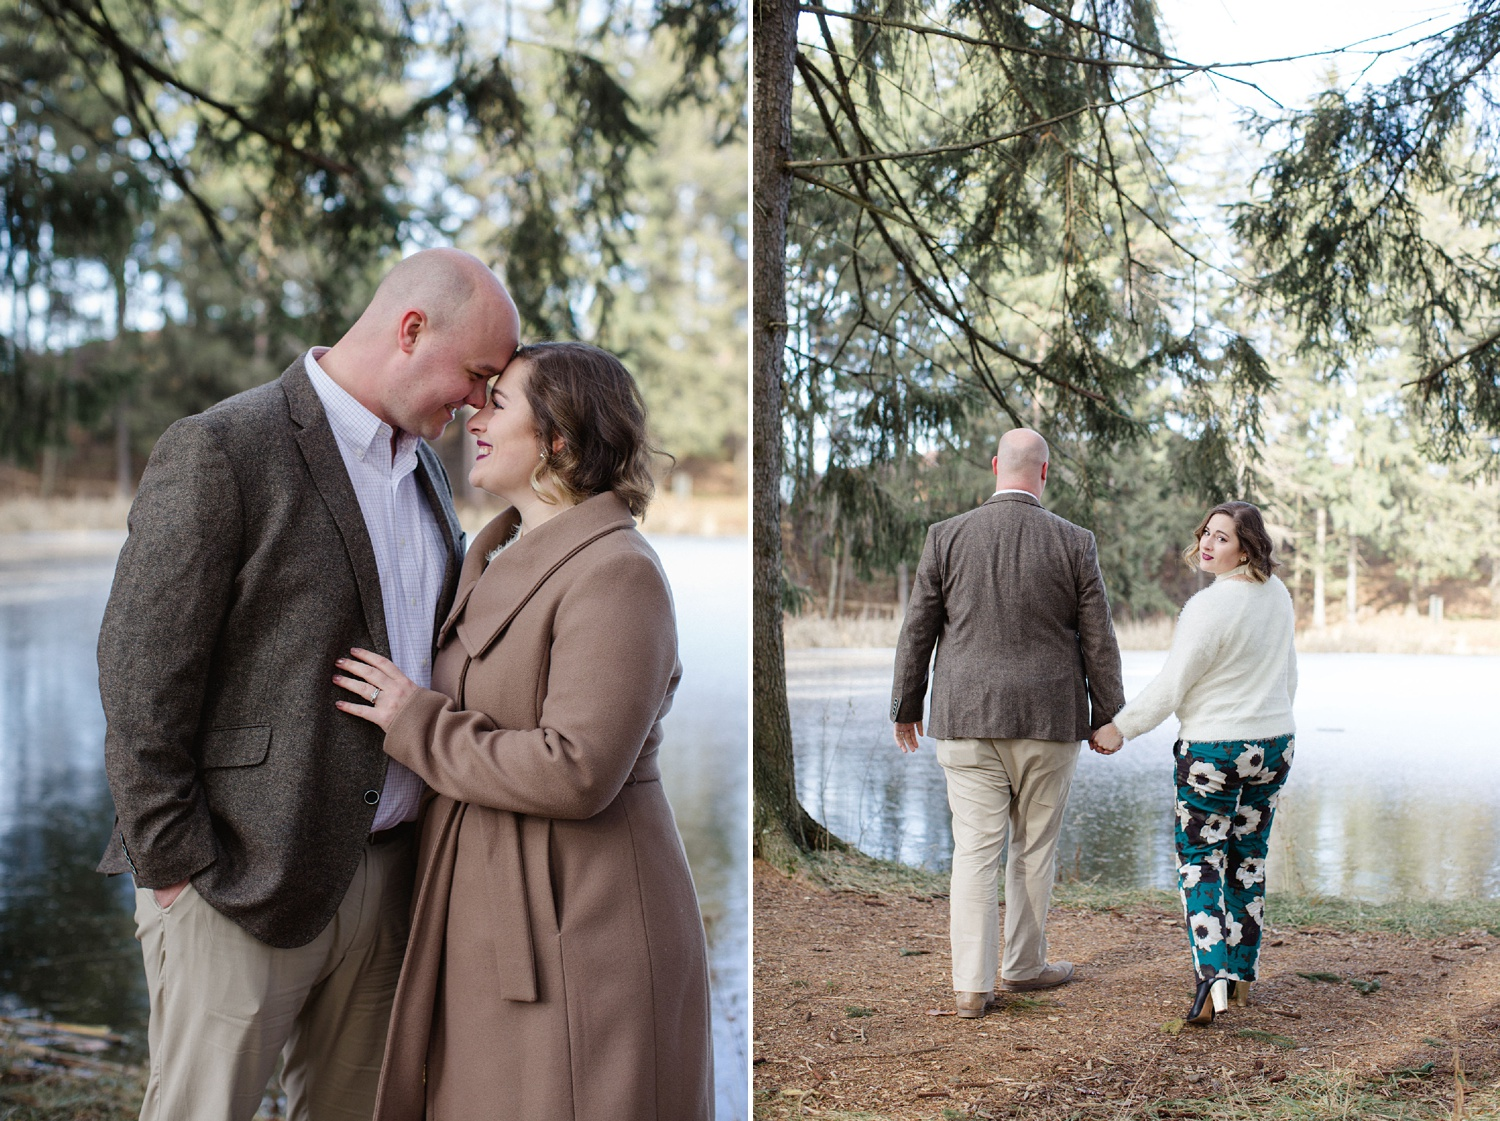 Clarks Summit PA Engagement Session Anniversary Photos_0009.jpg